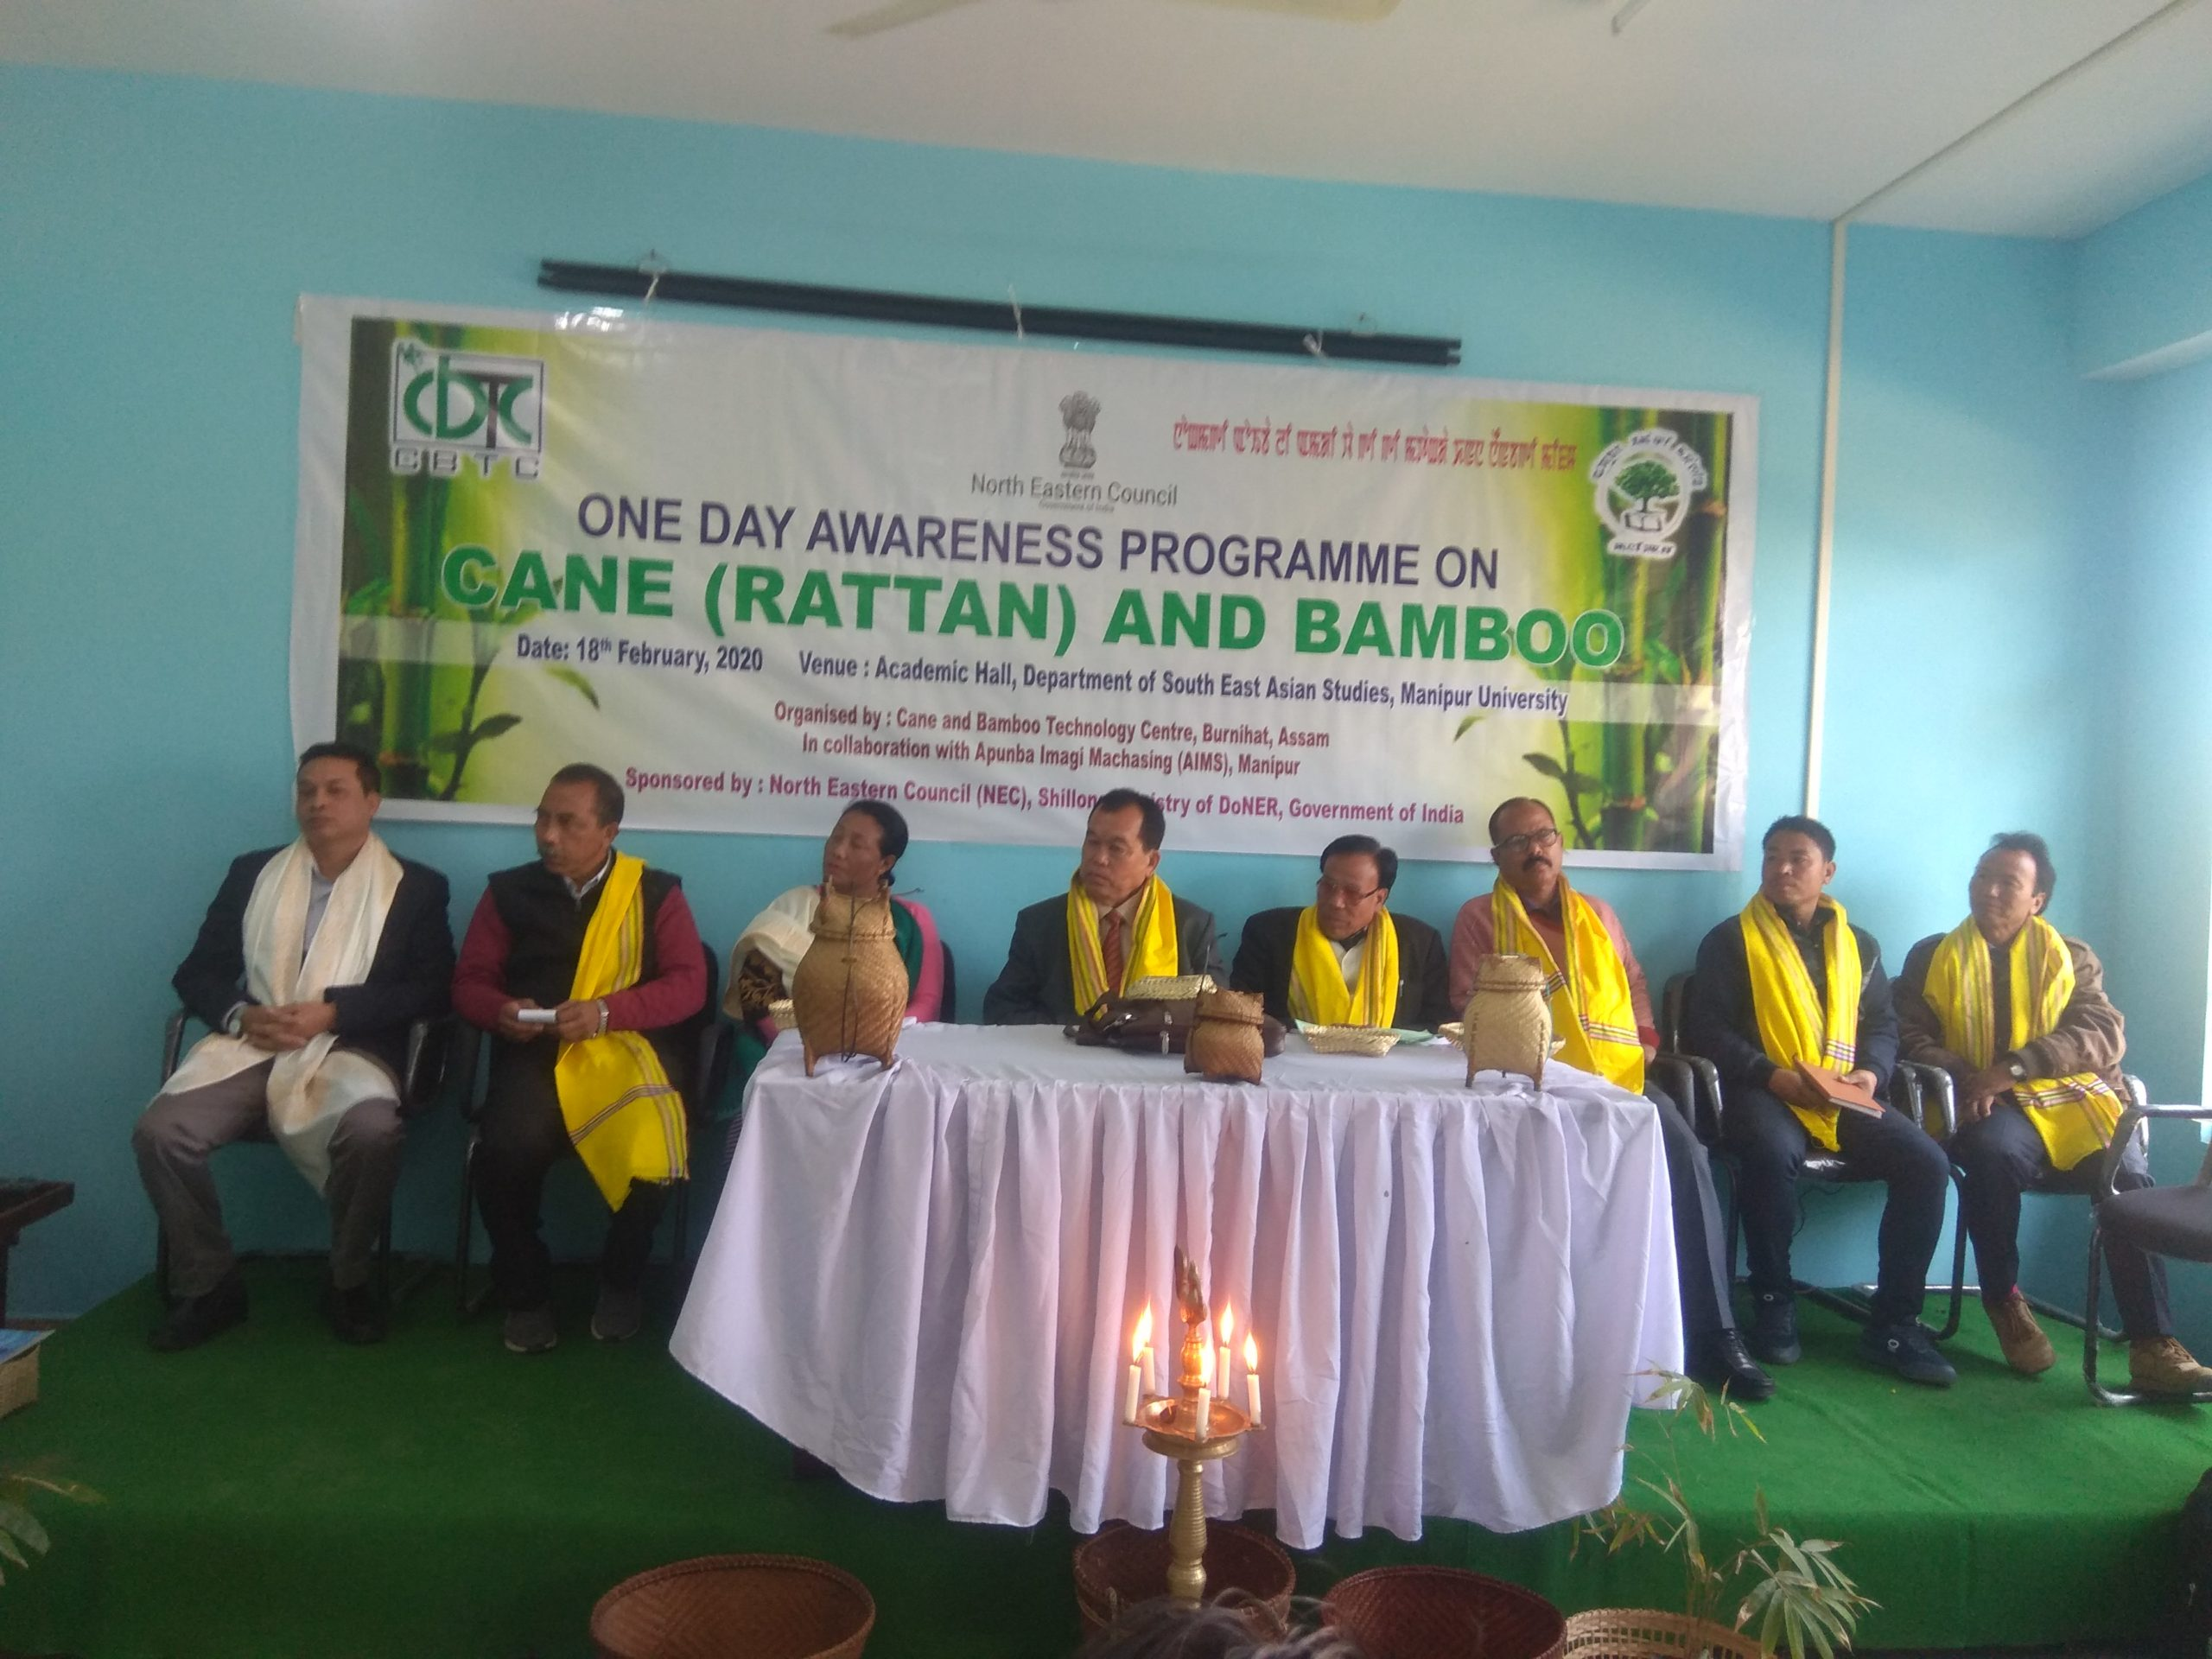 A day-long awareness programme on cane and bamboo held